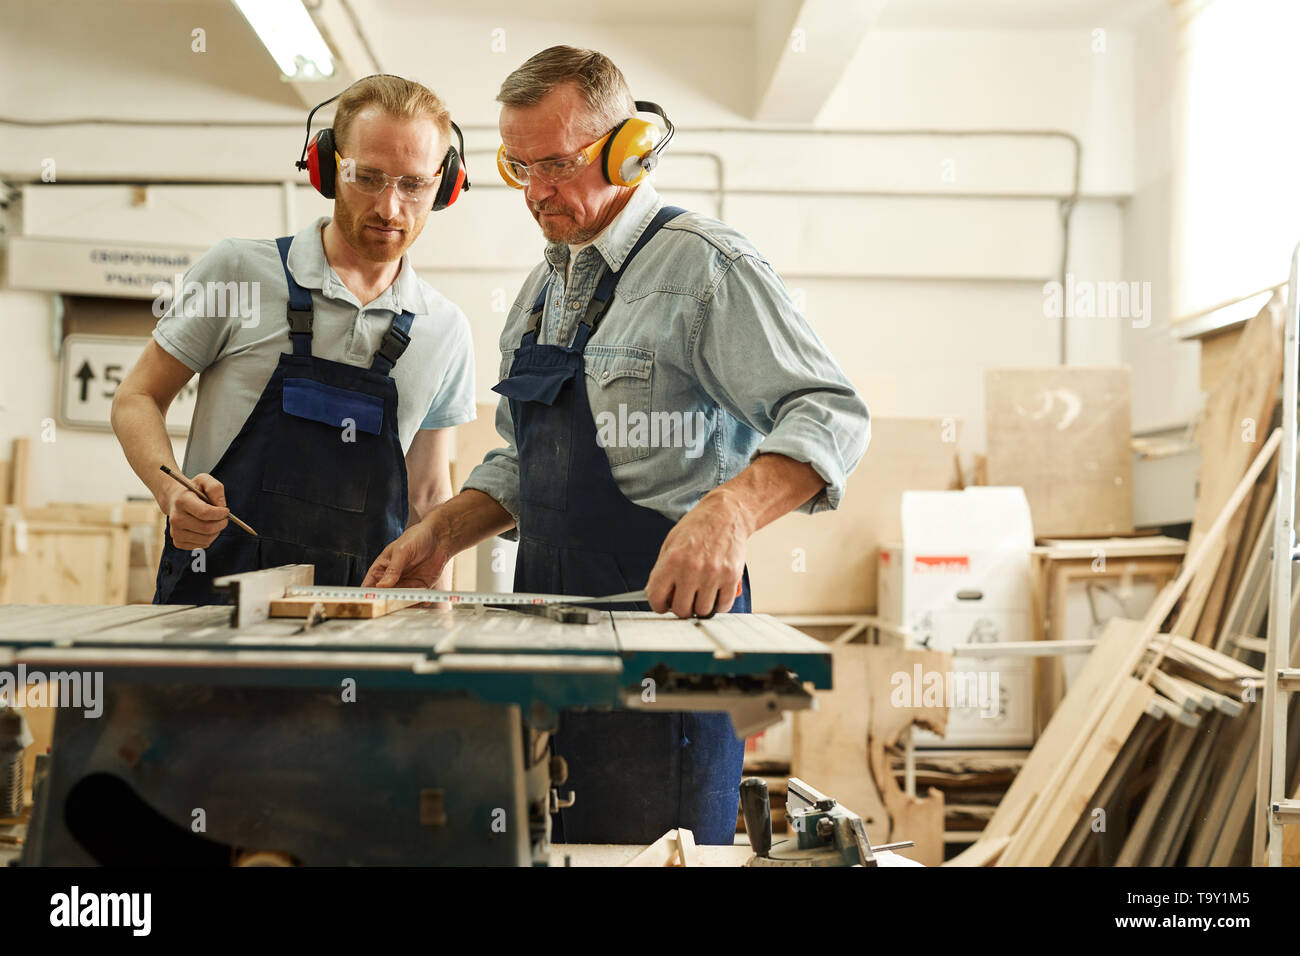 Waist up  portrait of senior carpenter working with apprentice in joinery workshop, copy space - Stock Image